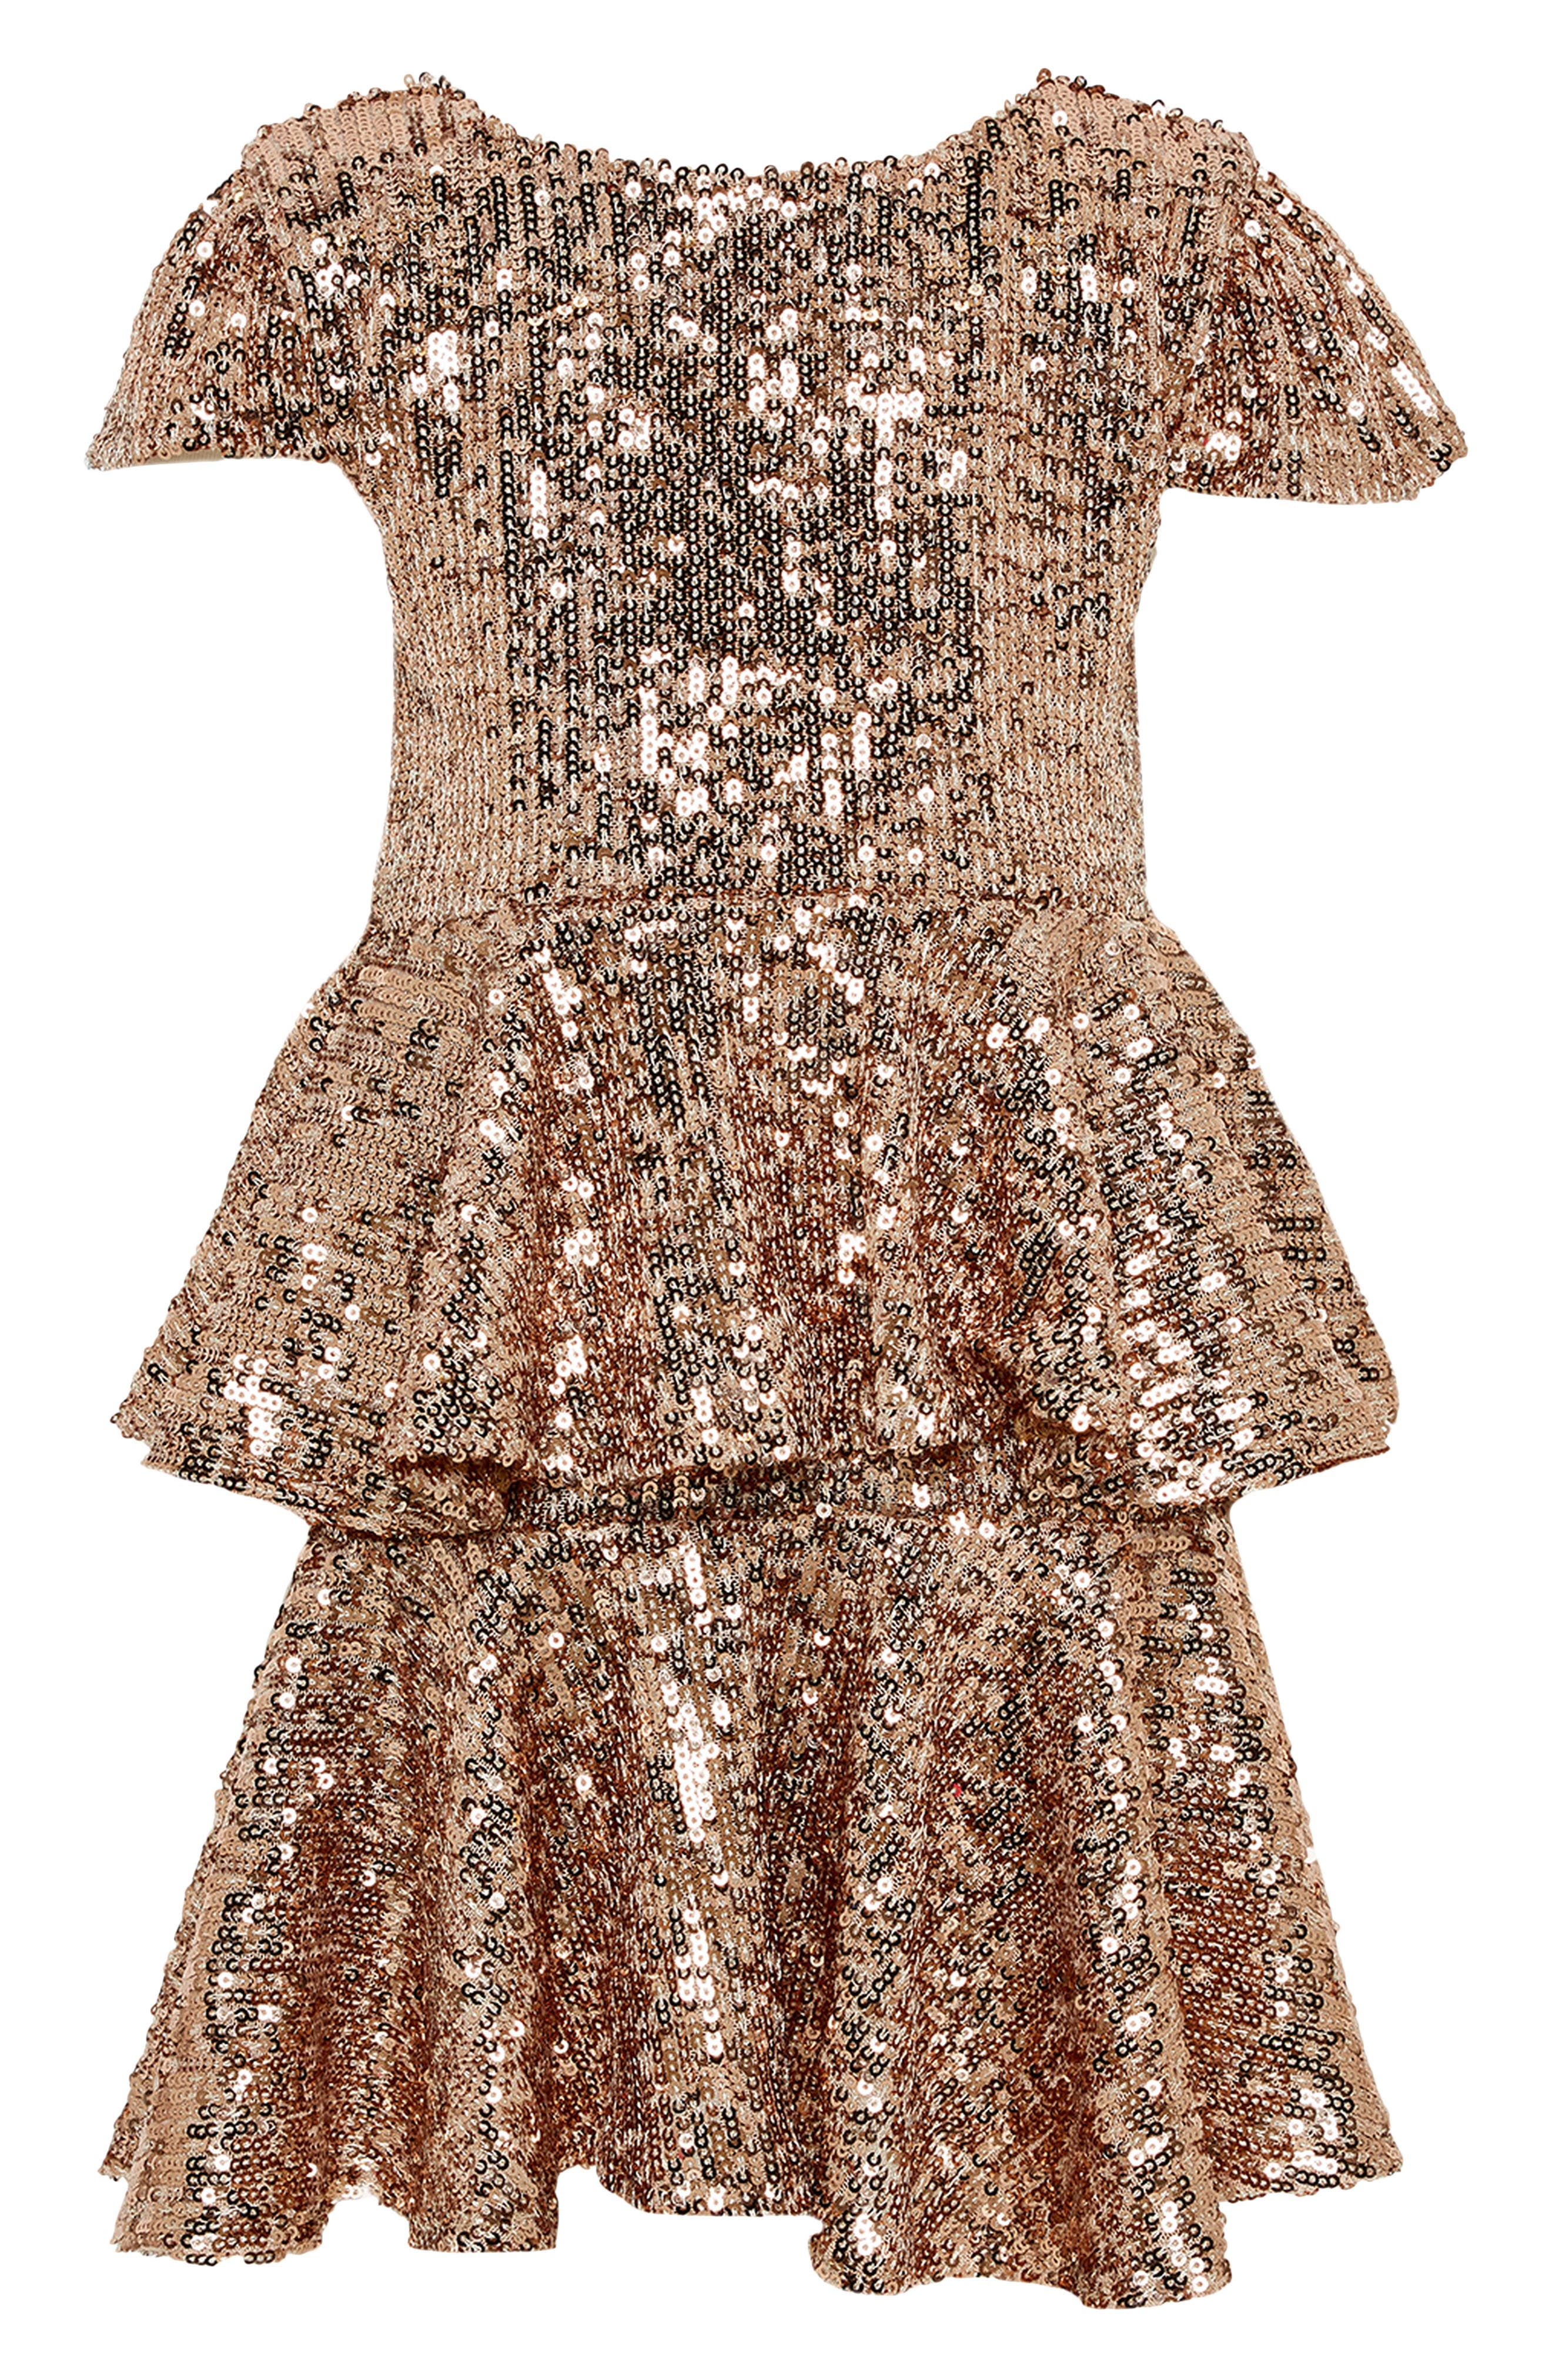 Baby girl dresses by exclusive top label Bardot Junior price tag $70 New tags